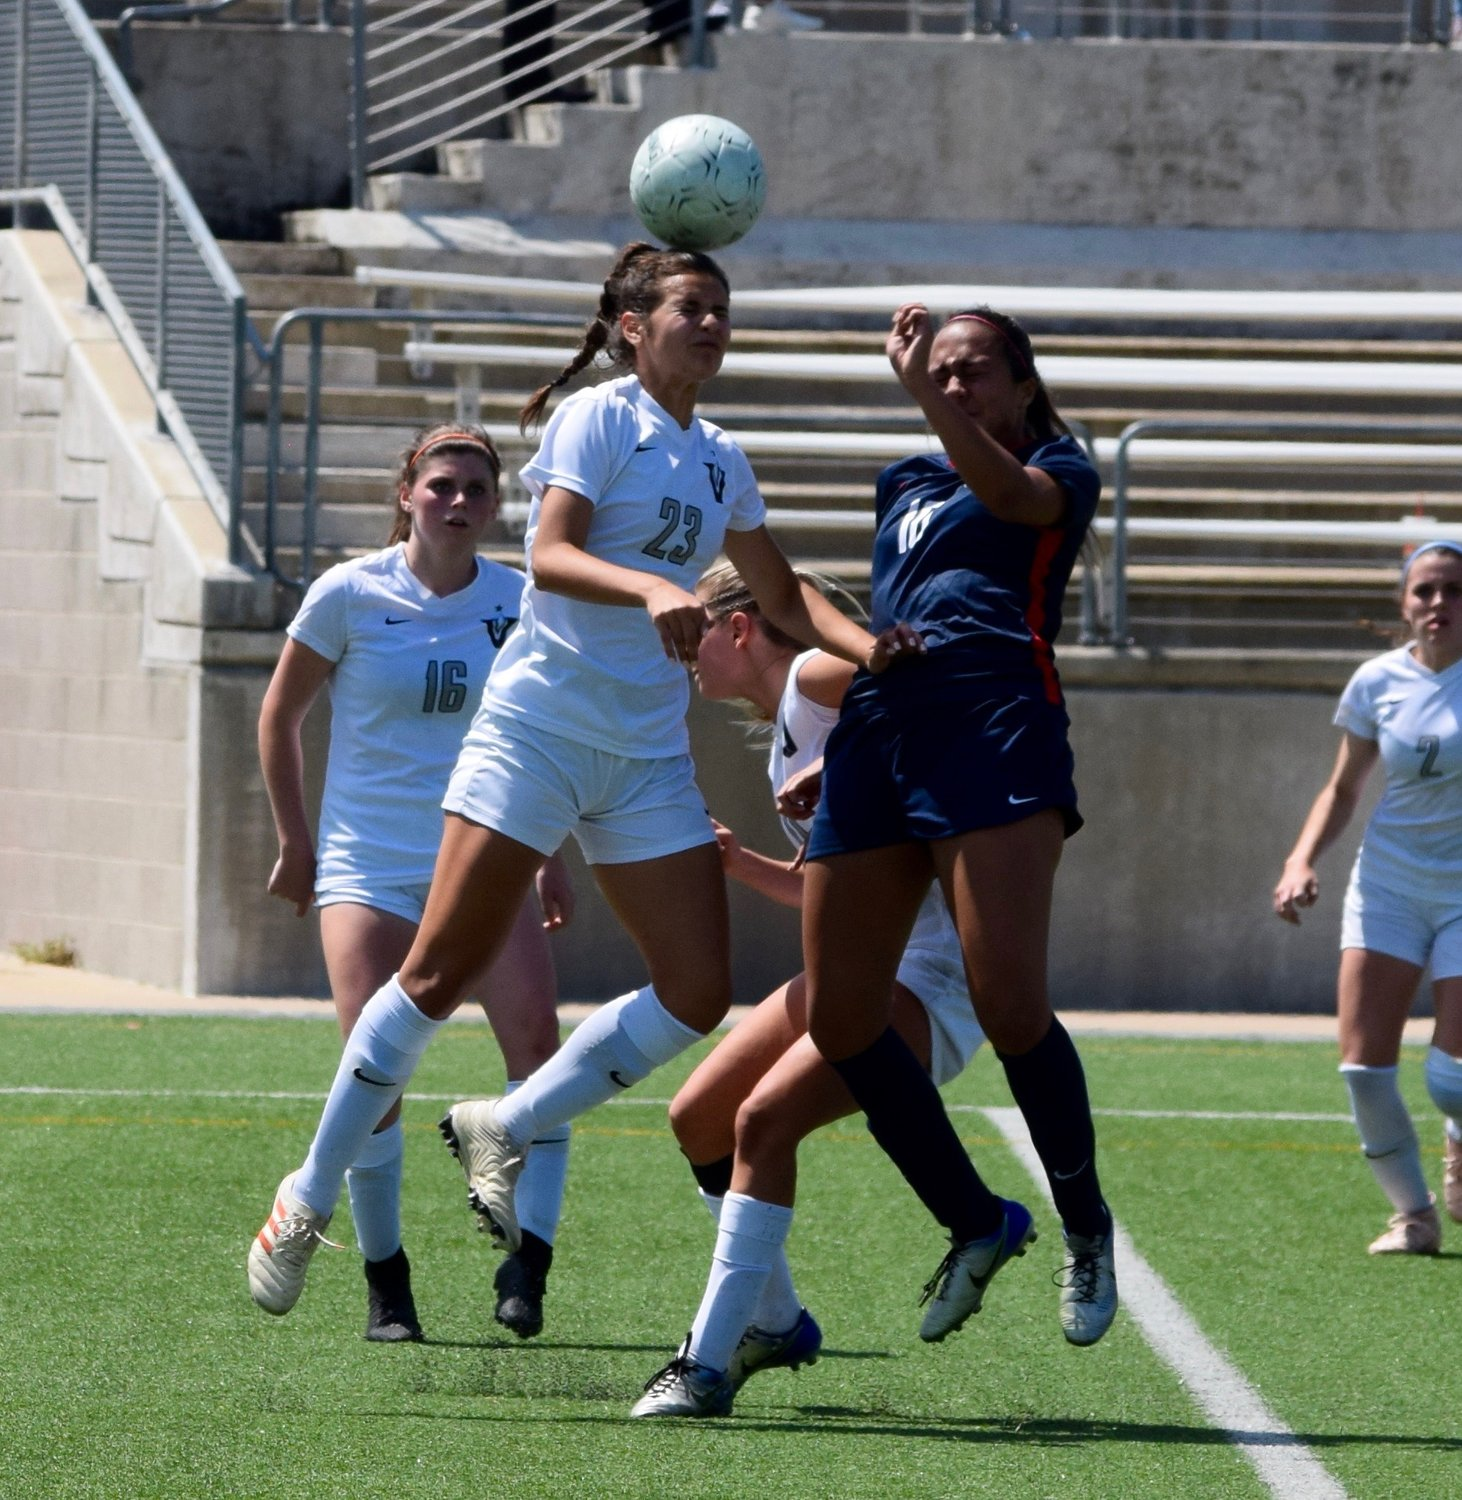 KayaPehrson and Vandegrift lost to Allen 1-0 in the regional quarterfinals Friday afternoon at Kelly Reeves Athletic Complex.